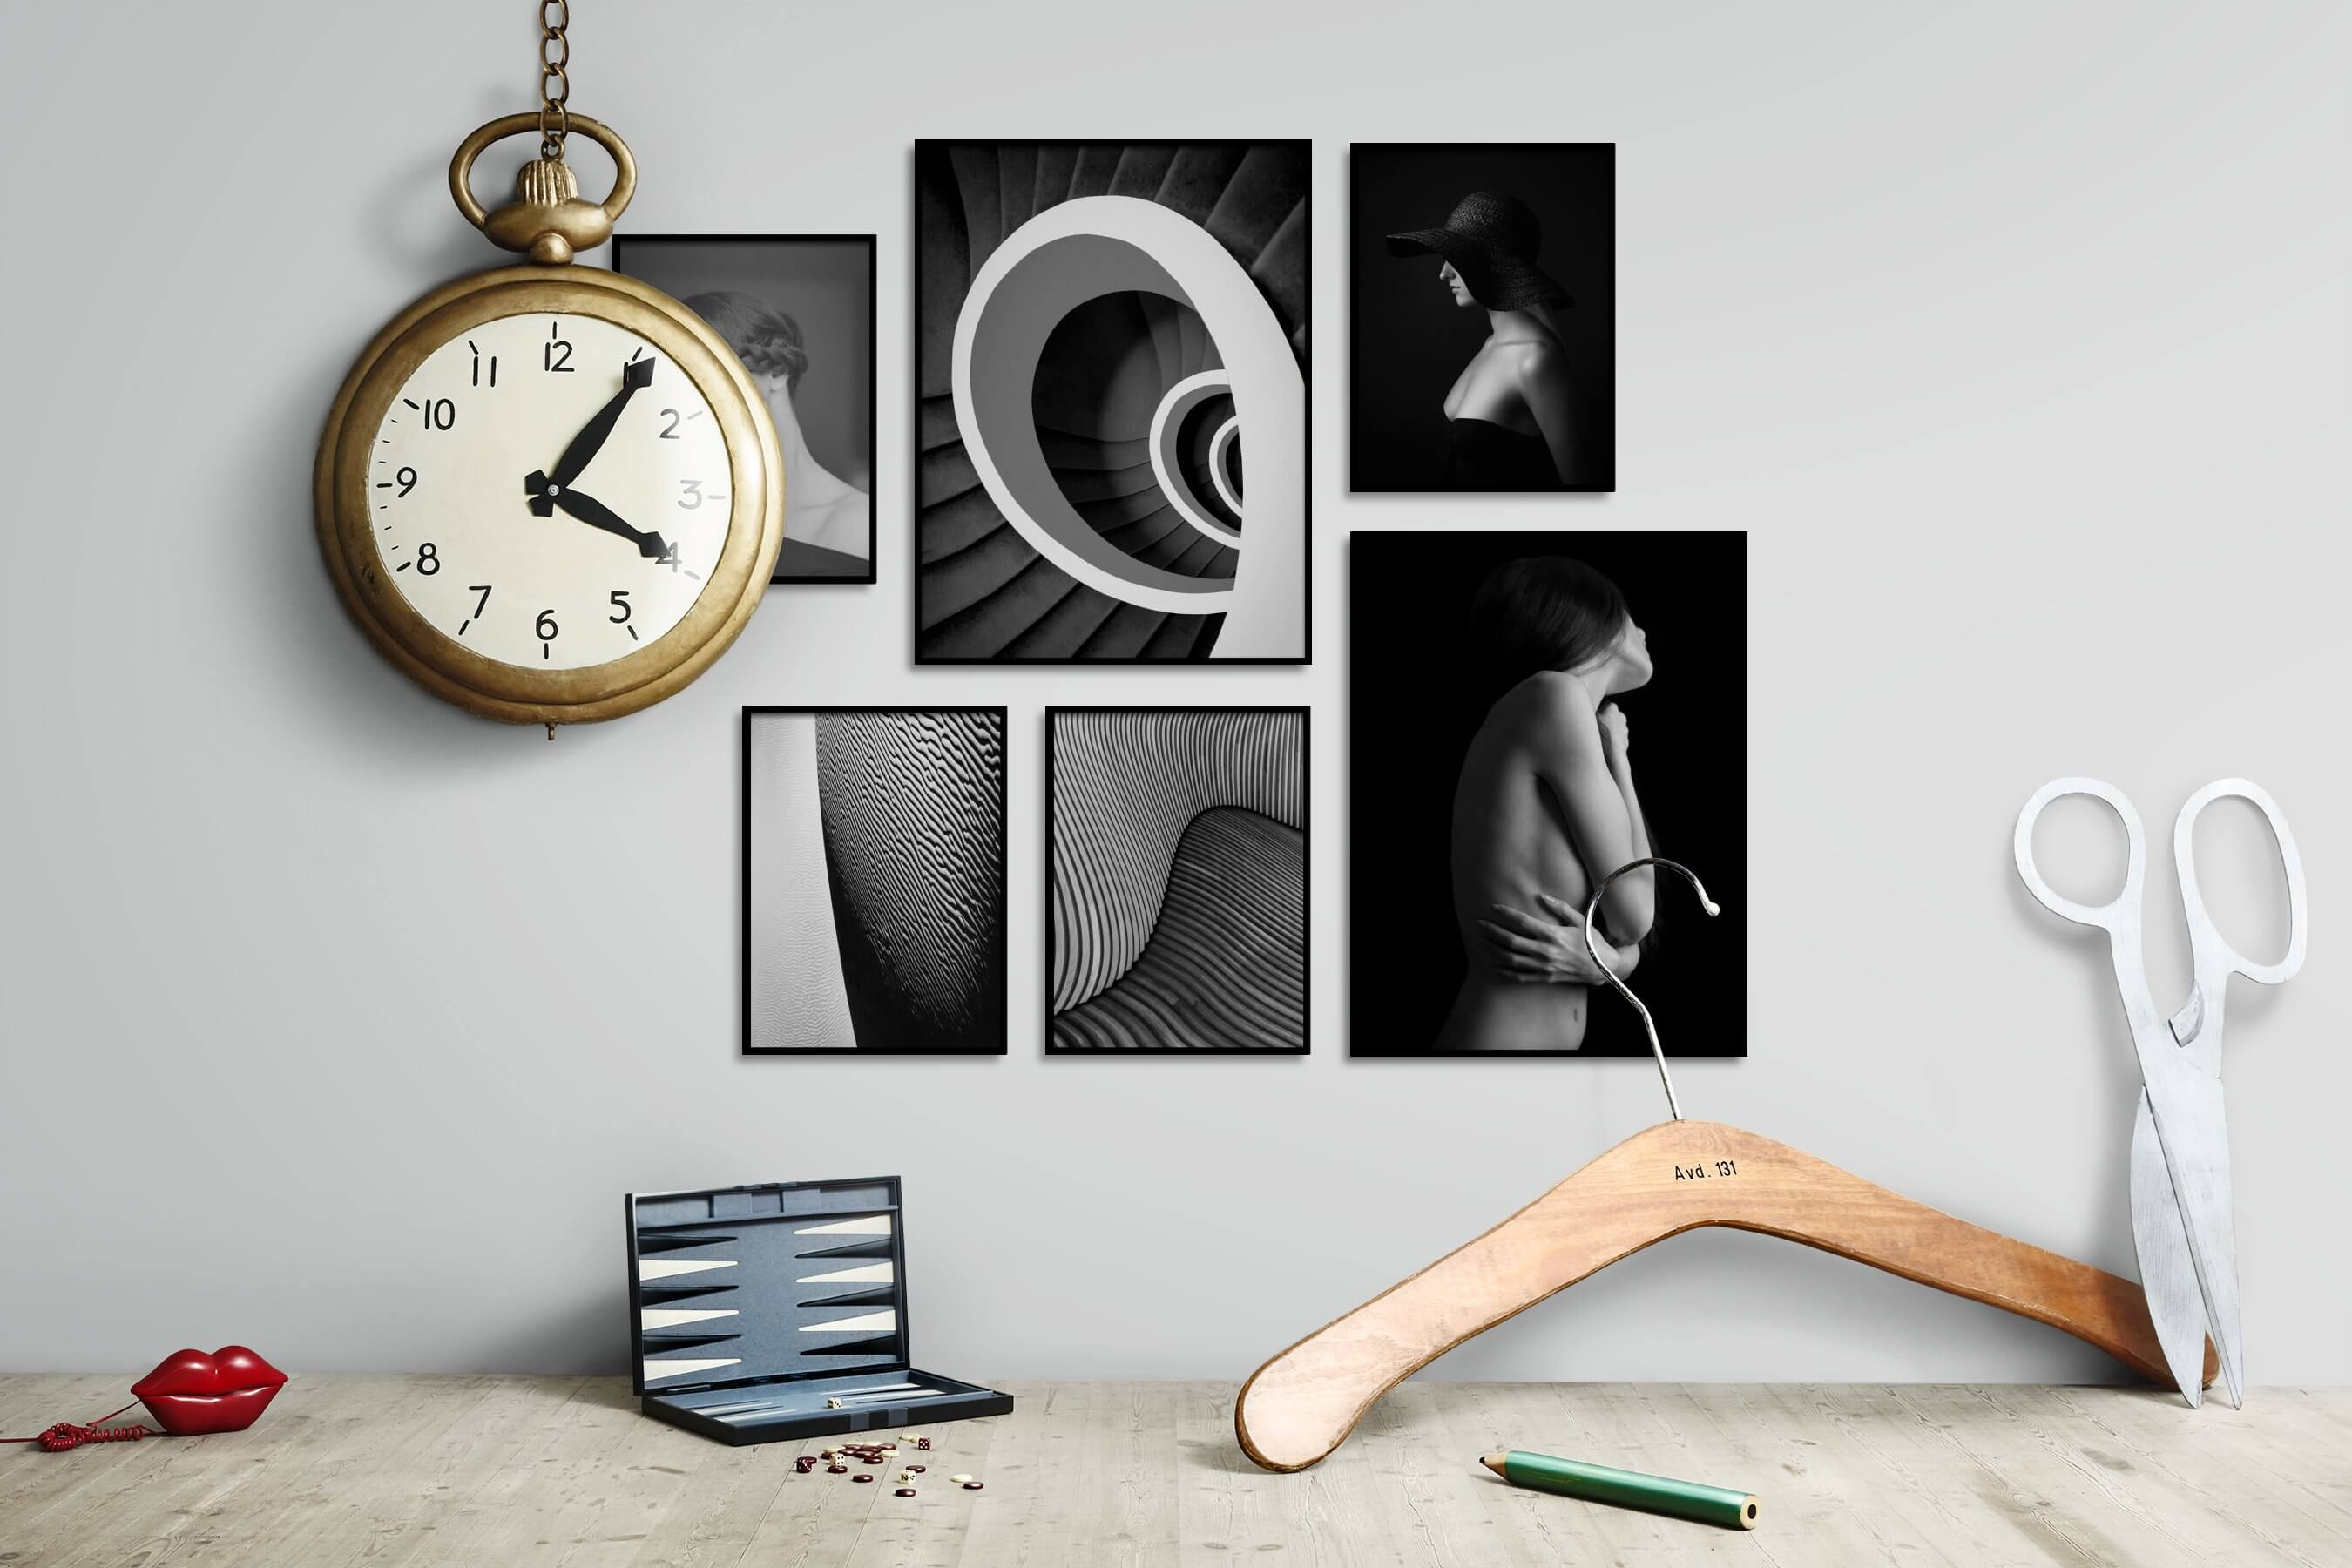 Gallery wall idea with six framed pictures arranged on a wall depicting Fashion & Beauty, Black & White, For the Moderate, For the Minimalist, Nature, and Dark Tones